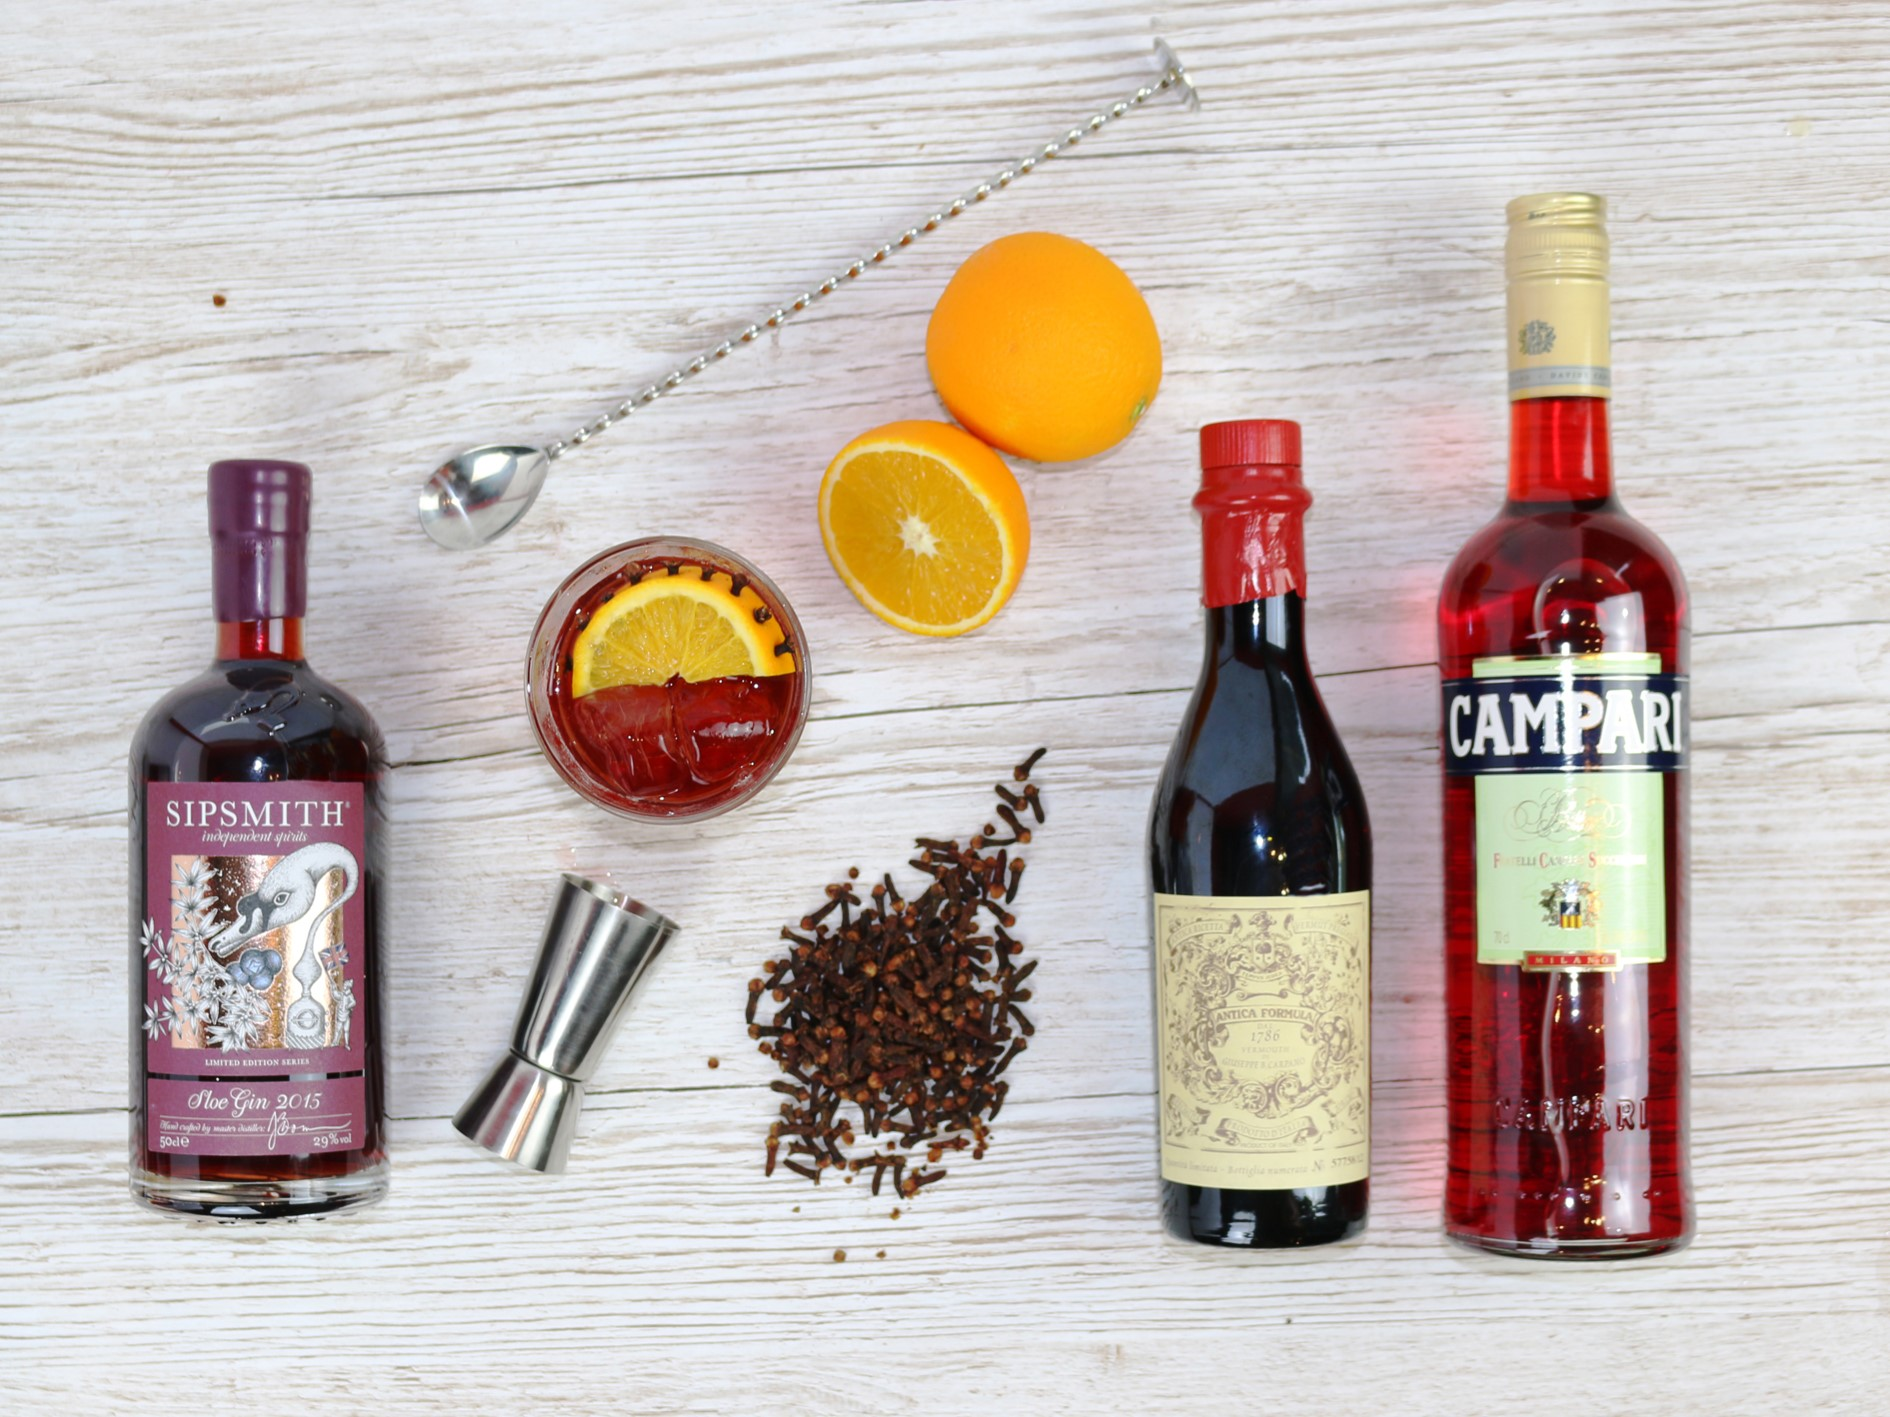 Sipsmith Sloe Gin and other spirits